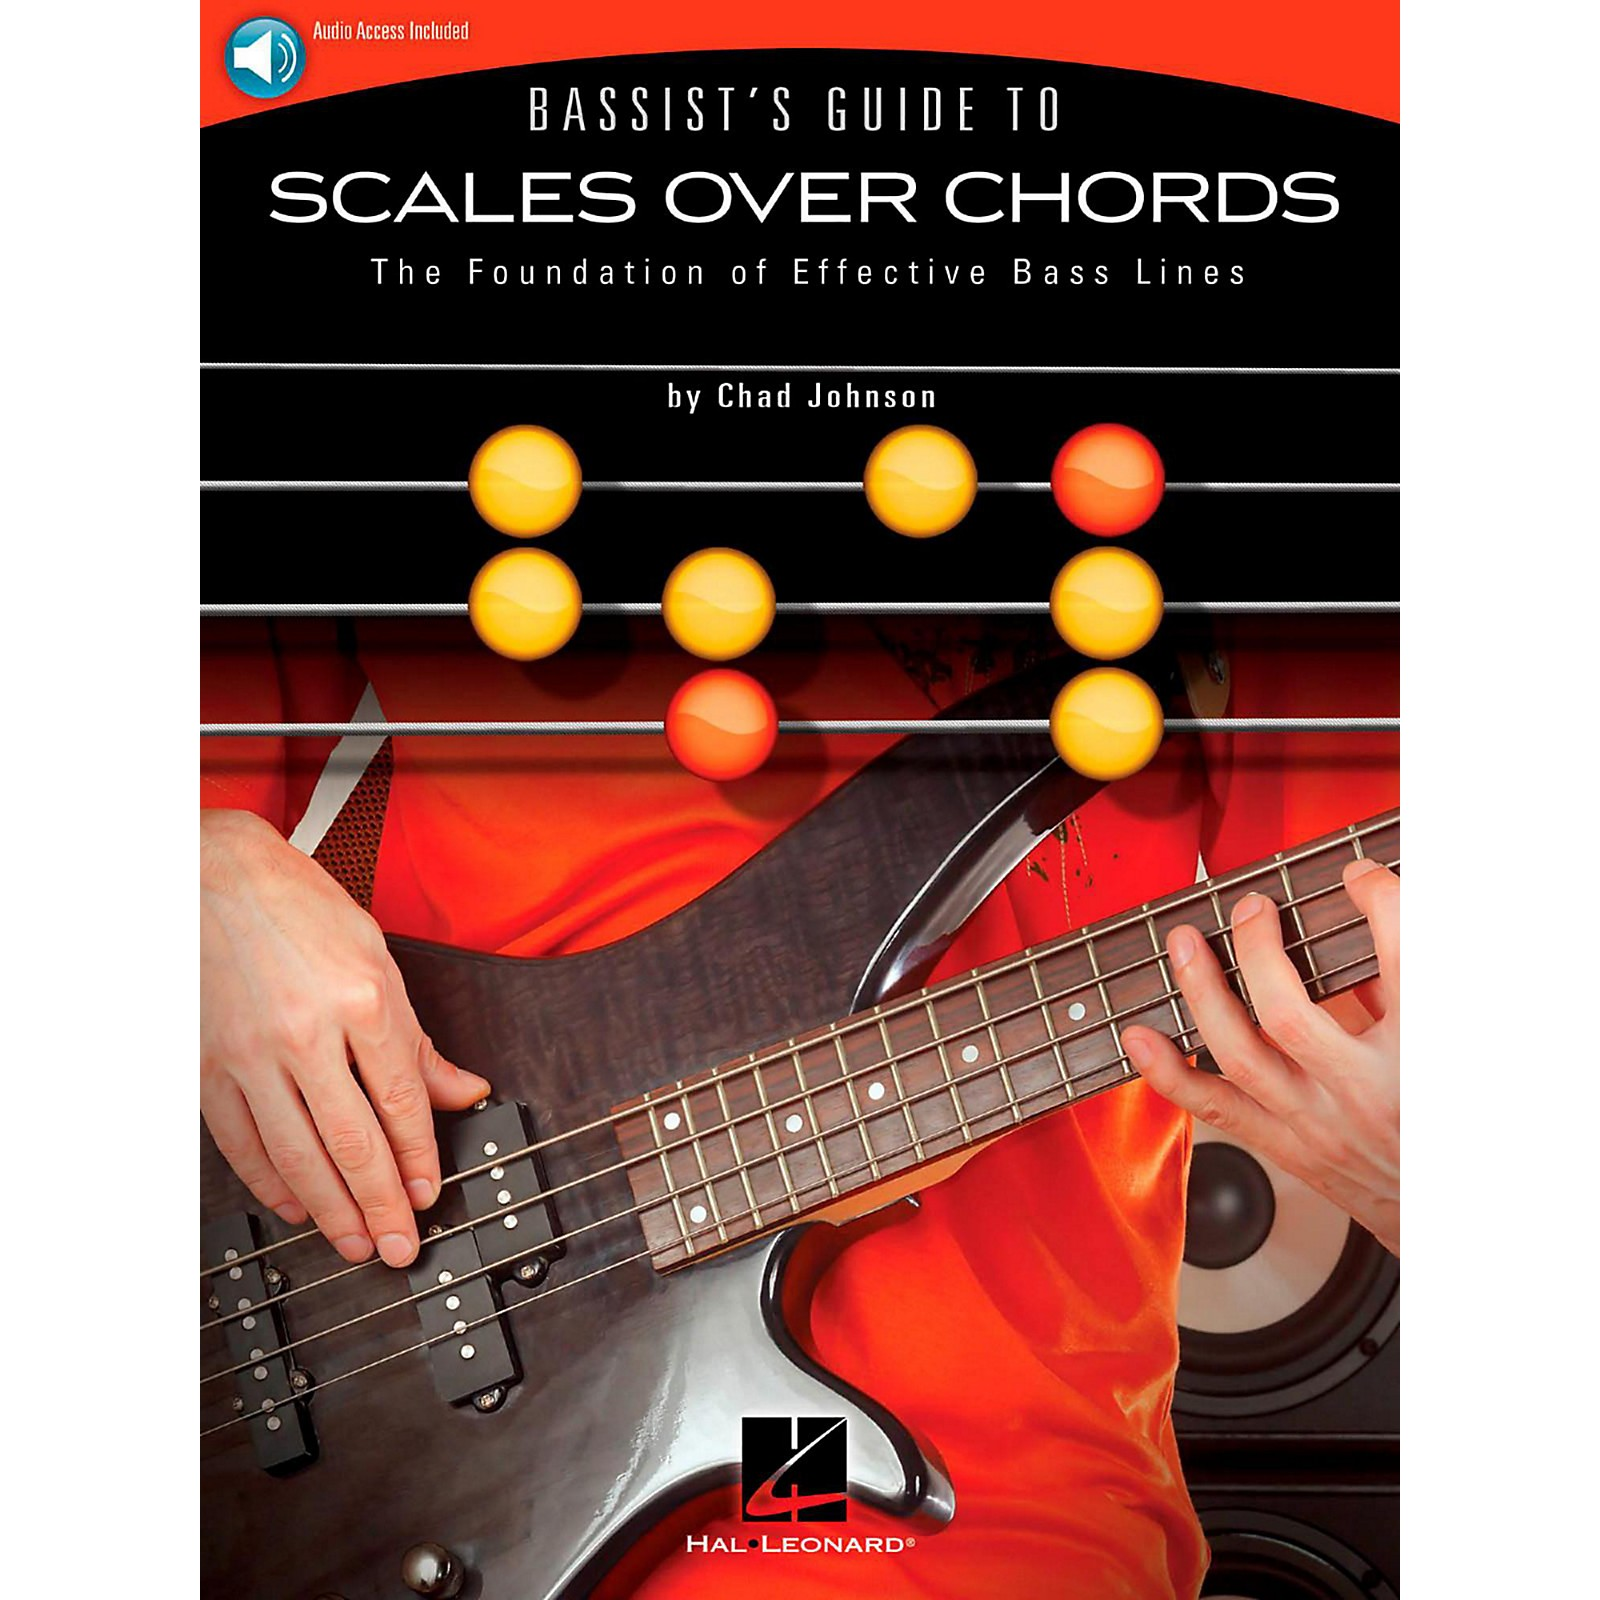 Hal Leonard Bassist's Guide to Scales Over Chords - The Foundation of Effective Bass Lines Book/Audio Online